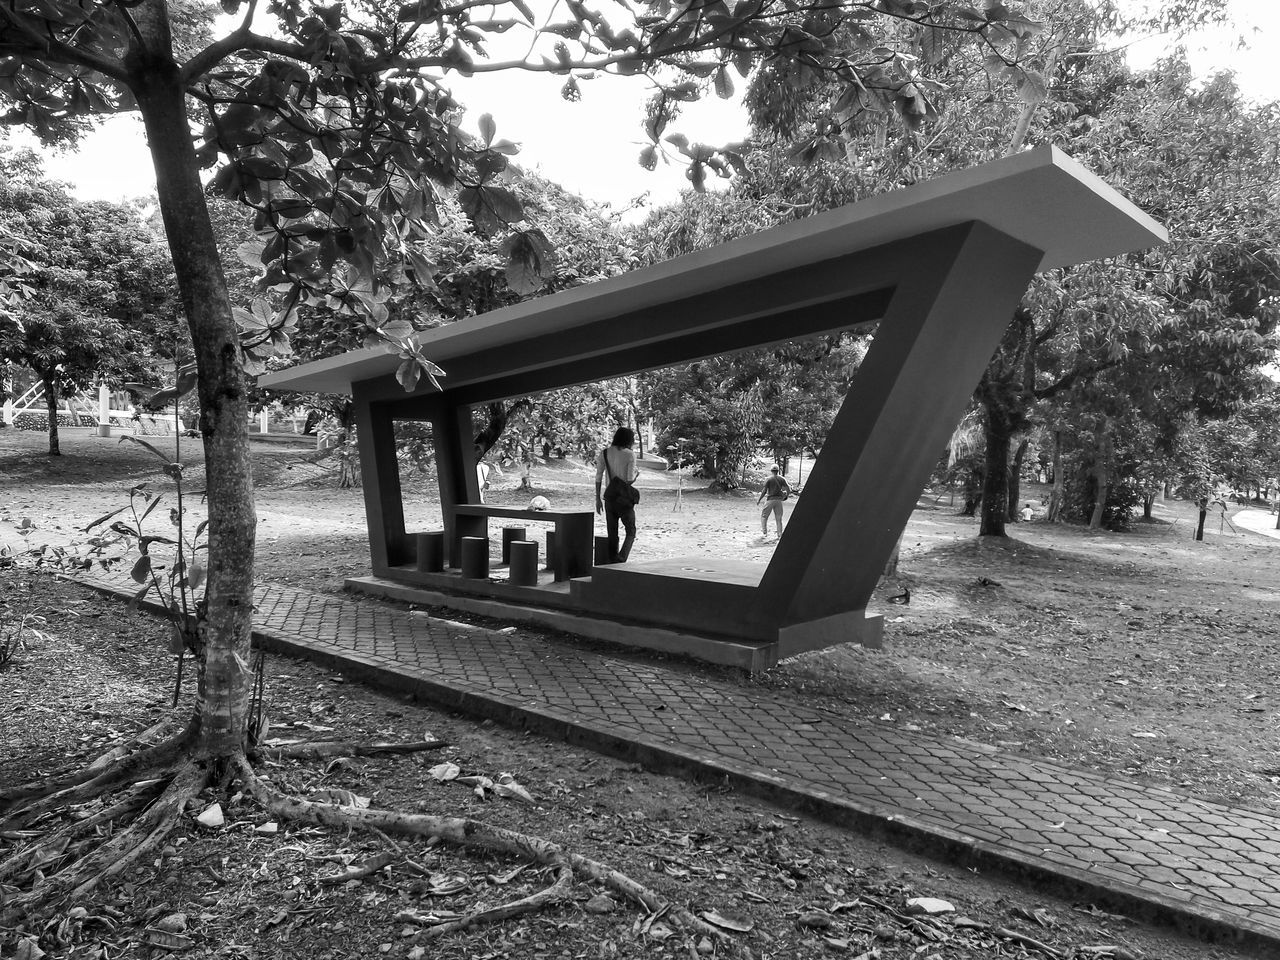 Tree Day Outdoors Built Structure No People Architecture Nature Sky Streetphotography Monochrome Naturelovers Black And White Monochrome Photography Blackandwhite Humaninterest Activity Landscape